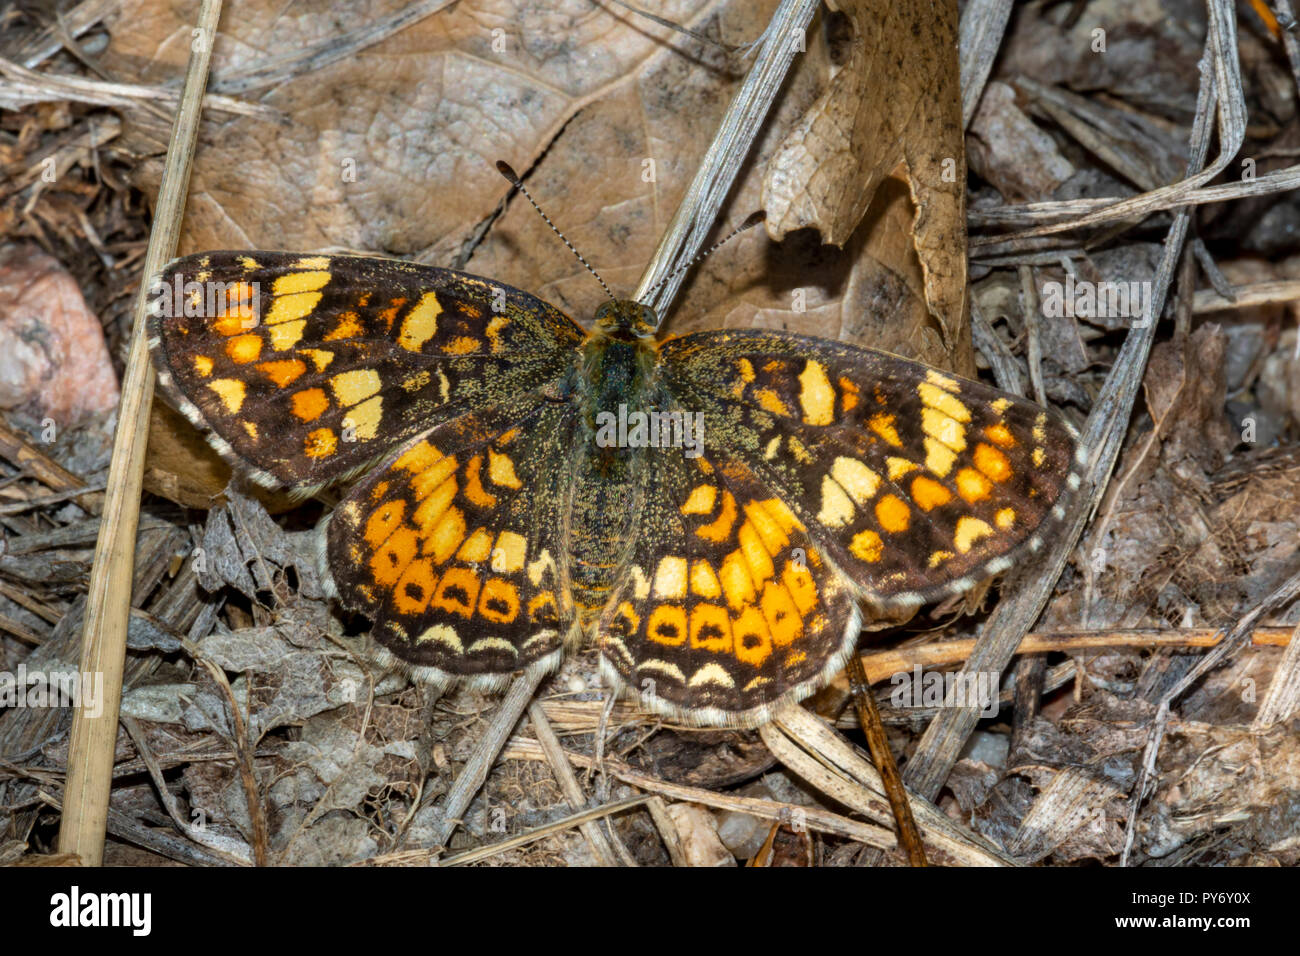 Field Crescent Butterfly (Phyciodes pulchella) resting in woodland ground leaf litter, Castle Rock Colorado US. - Stock Image